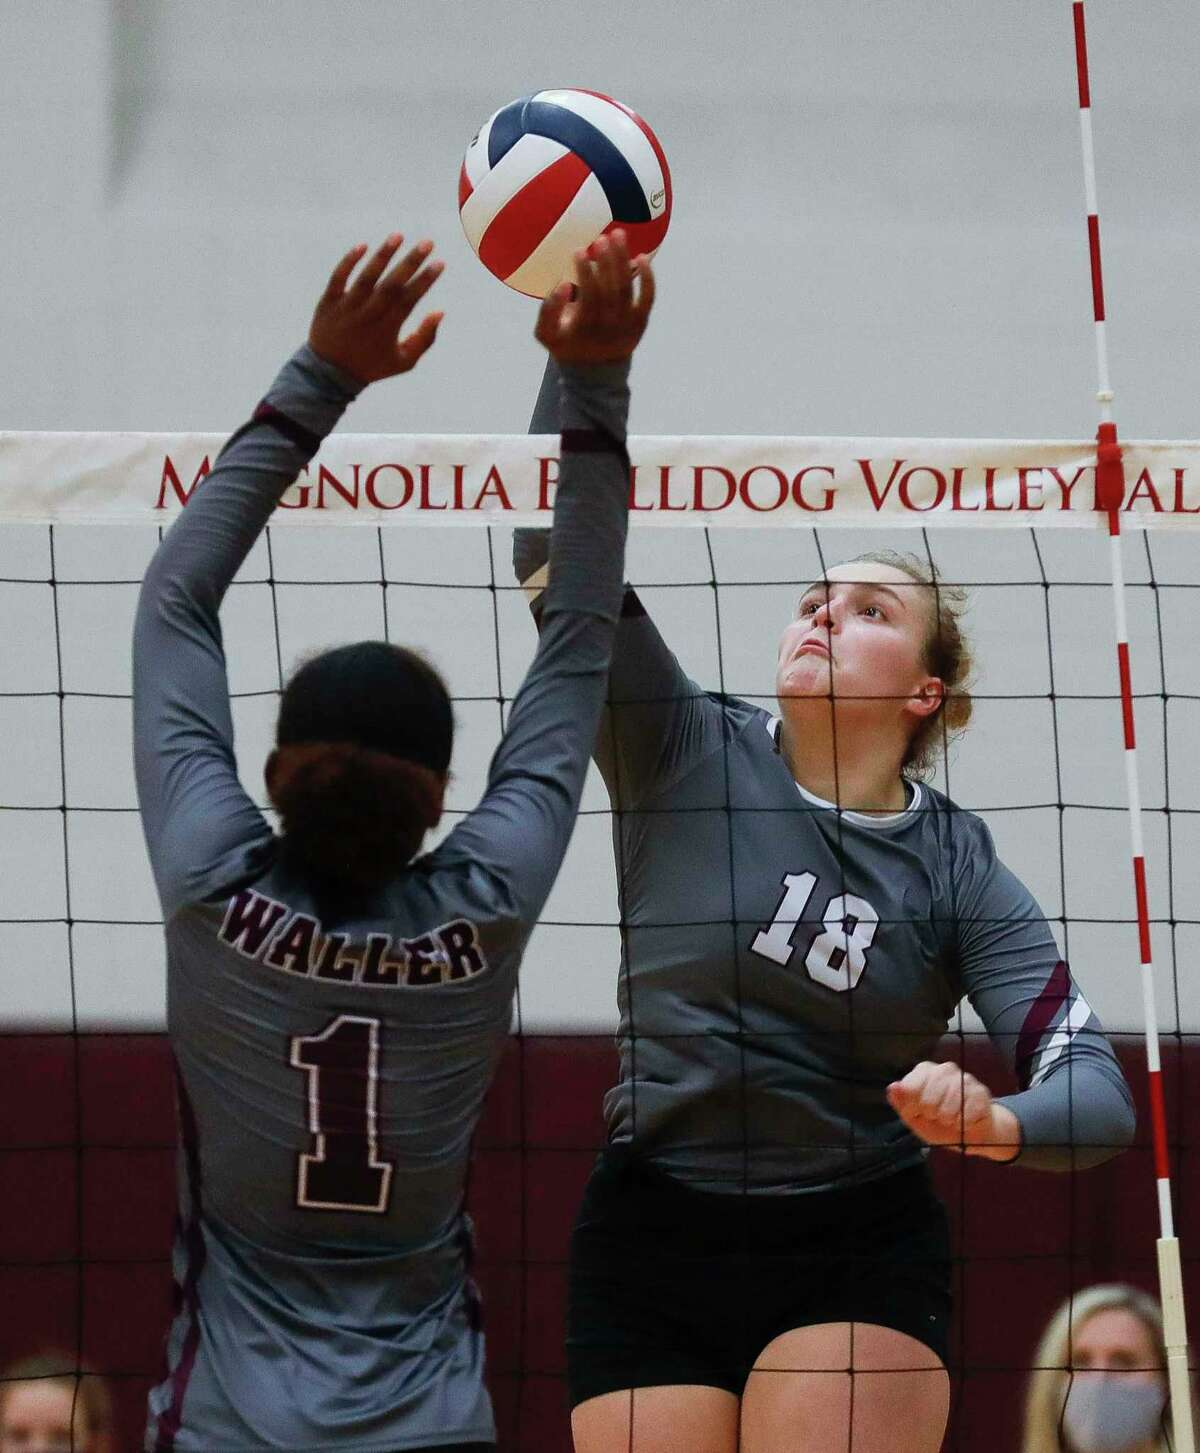 Magnolia middle blocker Brynn Botkin (18) get a shot past Waller right side hitter Essence Williams (1) during the first set of a District 19-5A high school volleyball match at Magnolia High School, Tuesday, Nov. 10, 2020, in Magnolia.